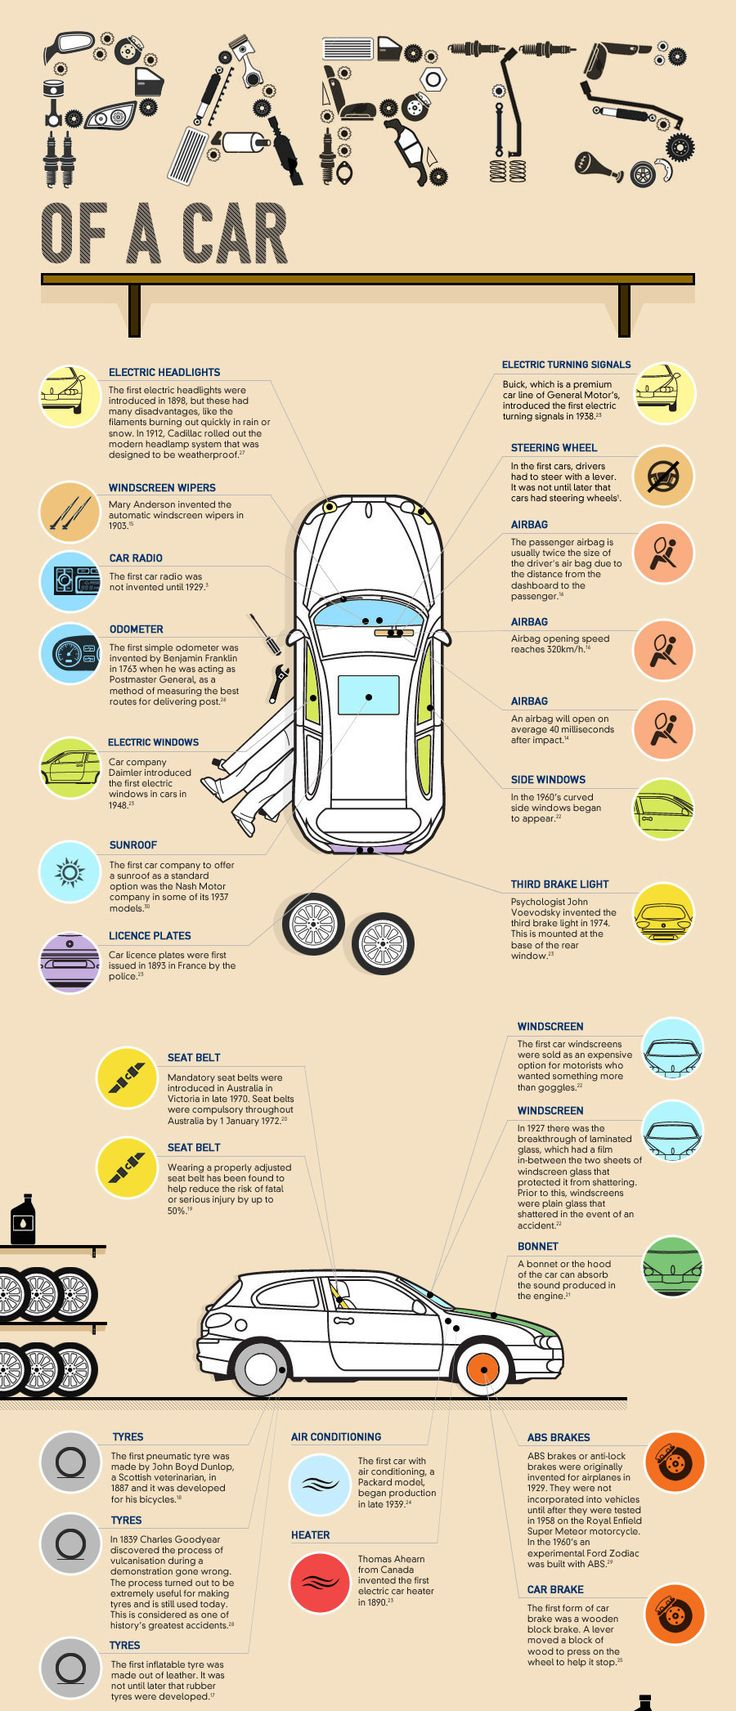 363 best car repairs maintenance images on pinterest car brake 21 genius car cheat sheets every driver needs to see fandeluxe Choice Image